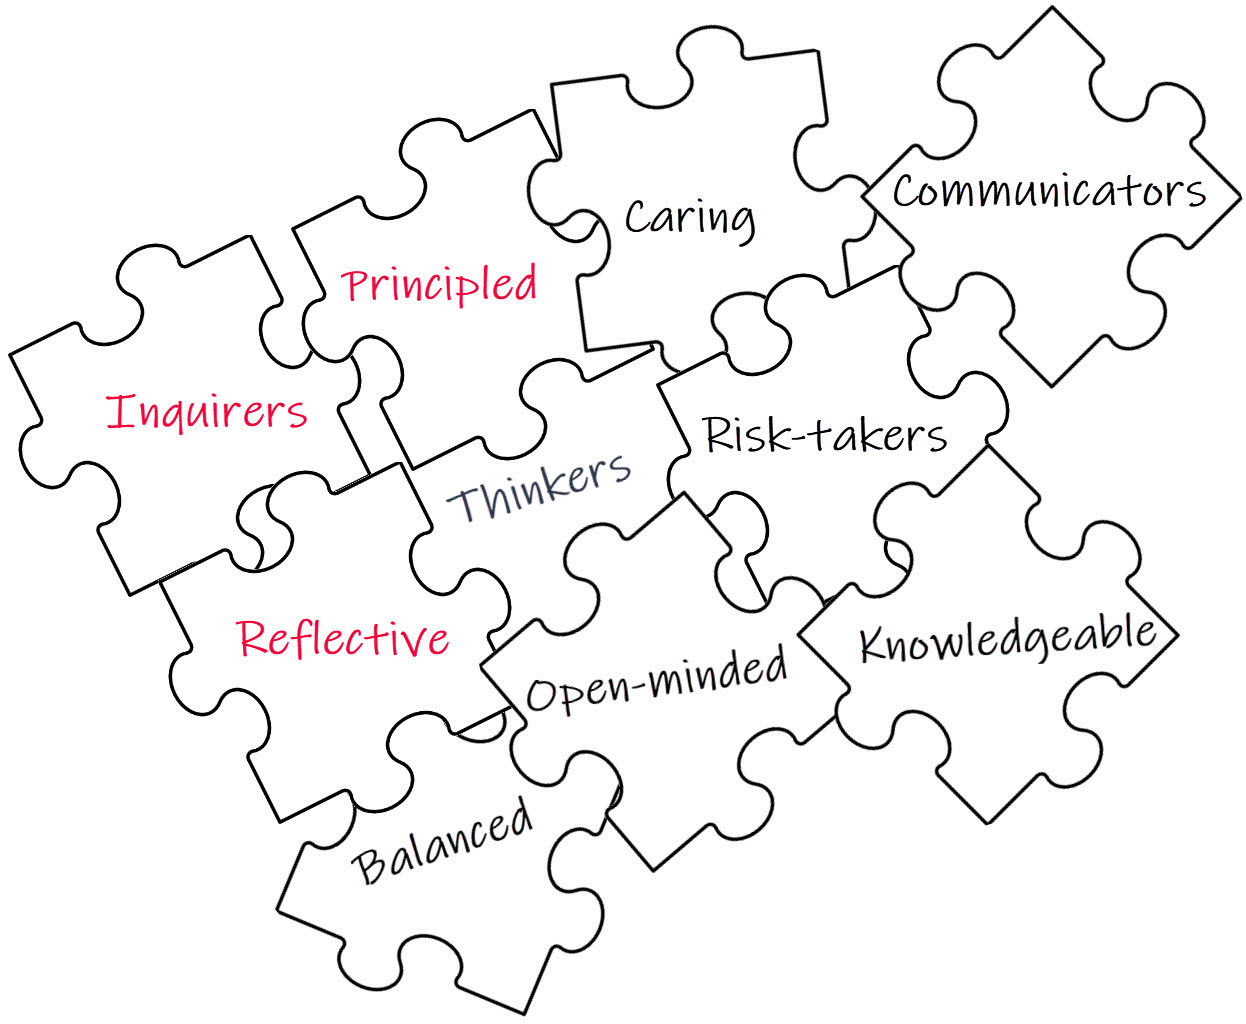 Embedded scenarios can help students become reflective learners who make ethical choices.